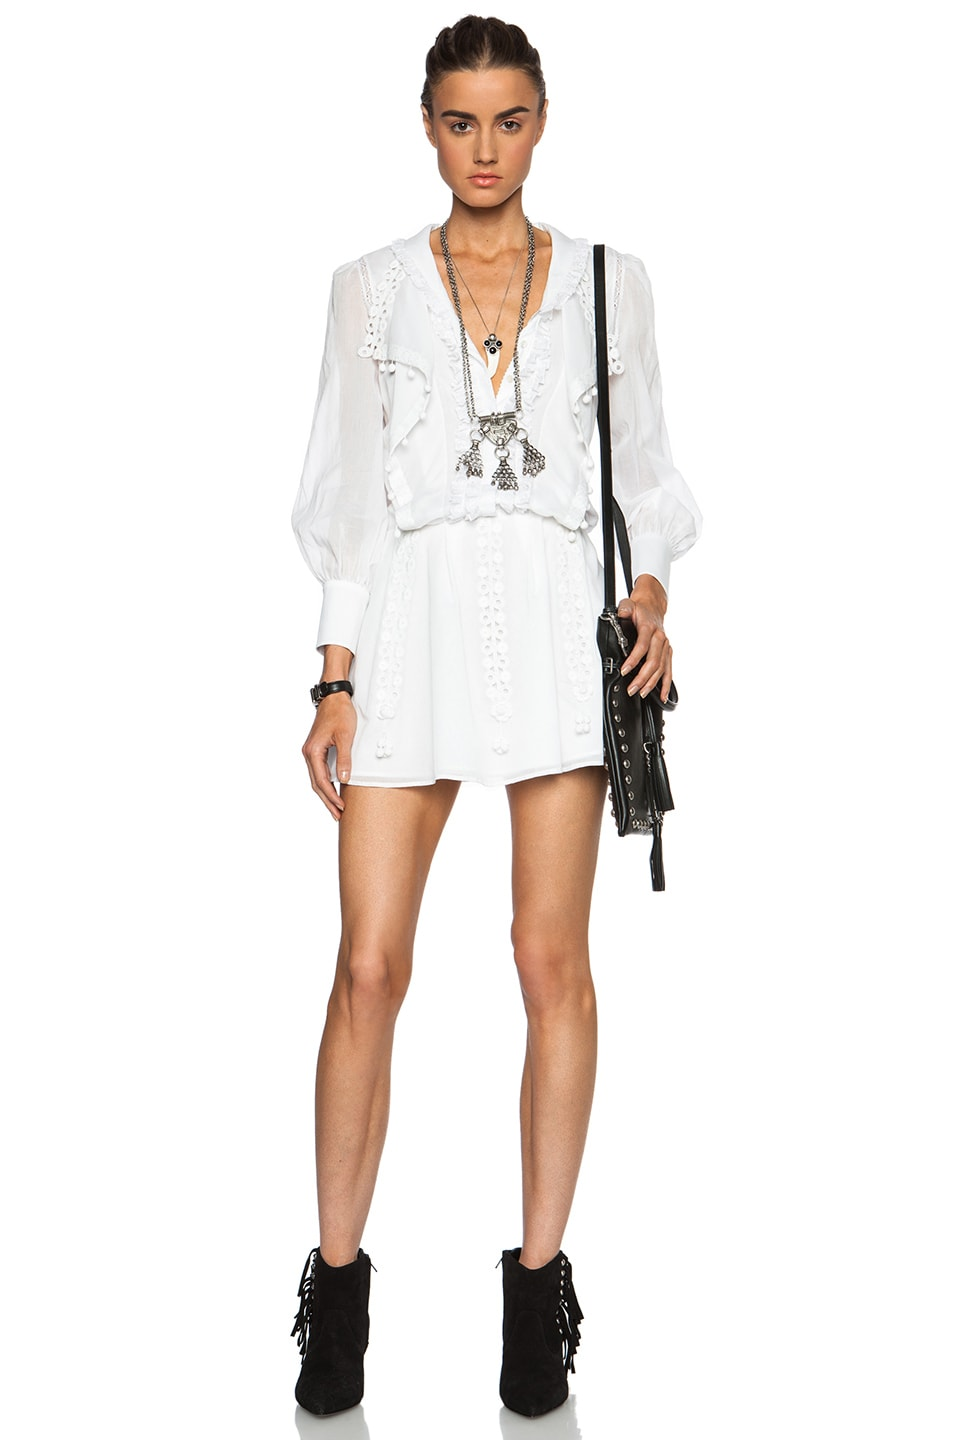 18ddf5a1d4 Image 1 of Saint Laurent Frill and Pom Pom Cotton Mini Dress in White